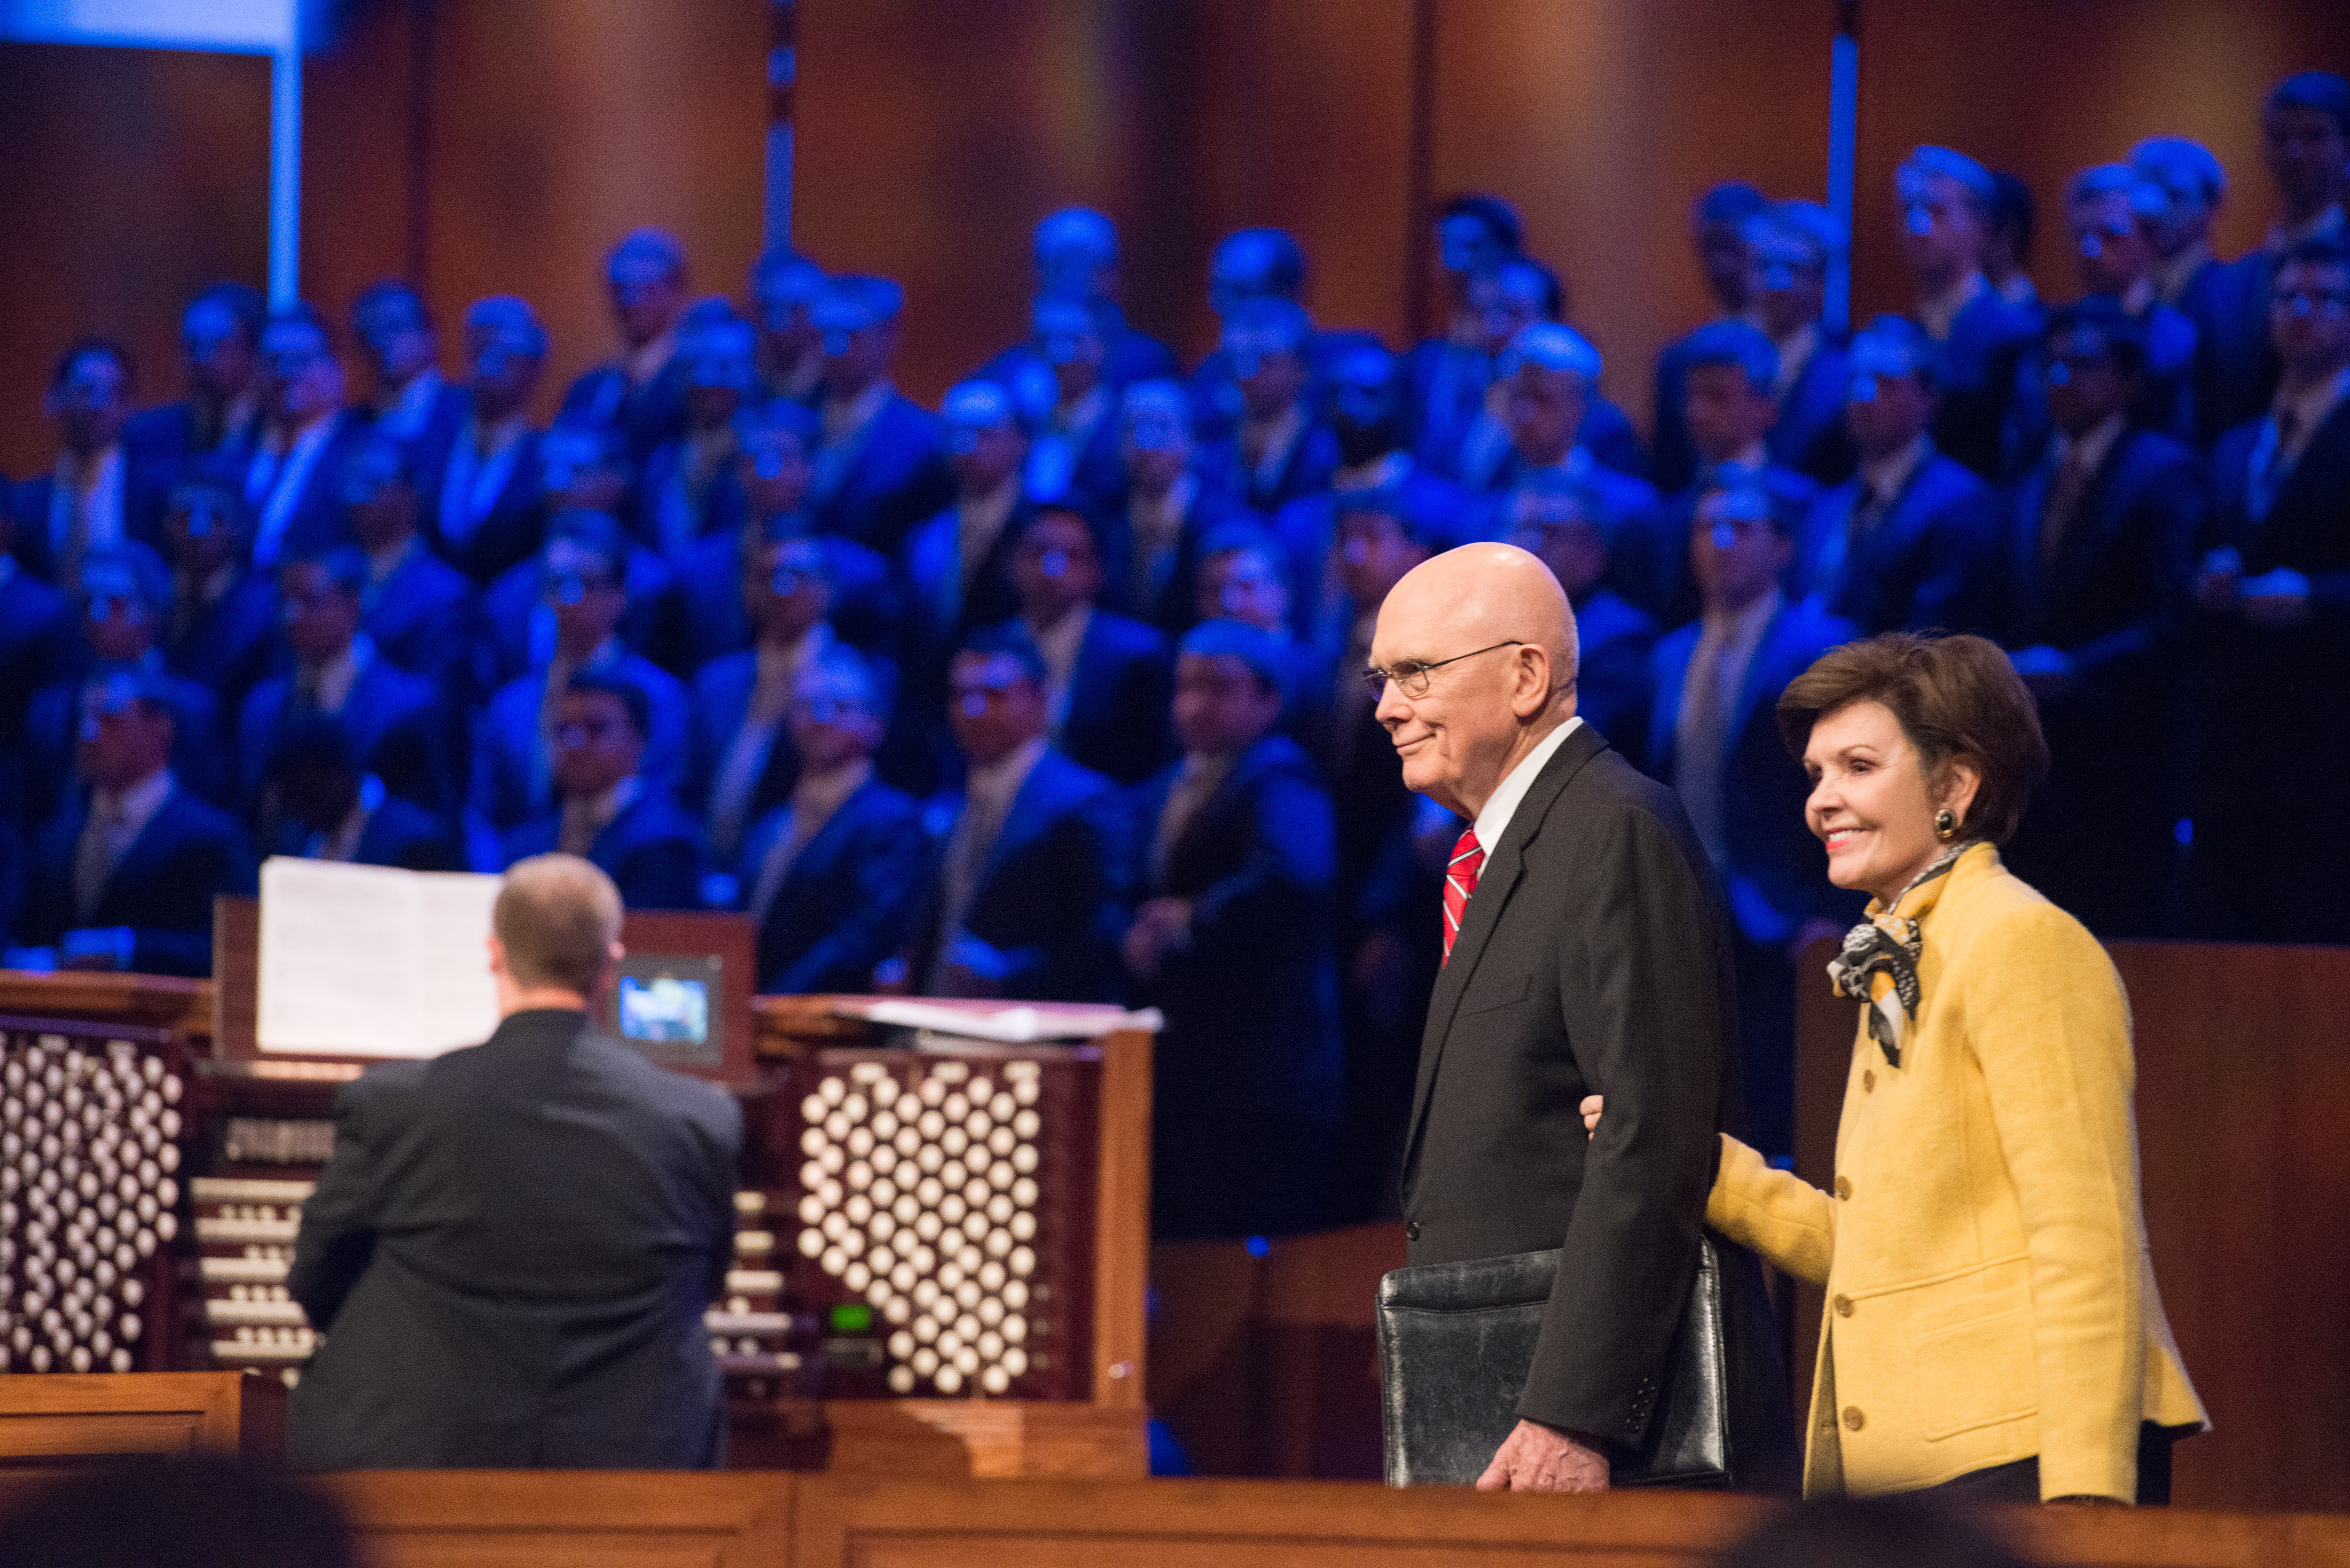 President Dallin H. Oaks of the First Presidency and his wife, Sister Kristen M. Oaks, greet students at a BYU-Idaho campus devotional on Oct. 30.